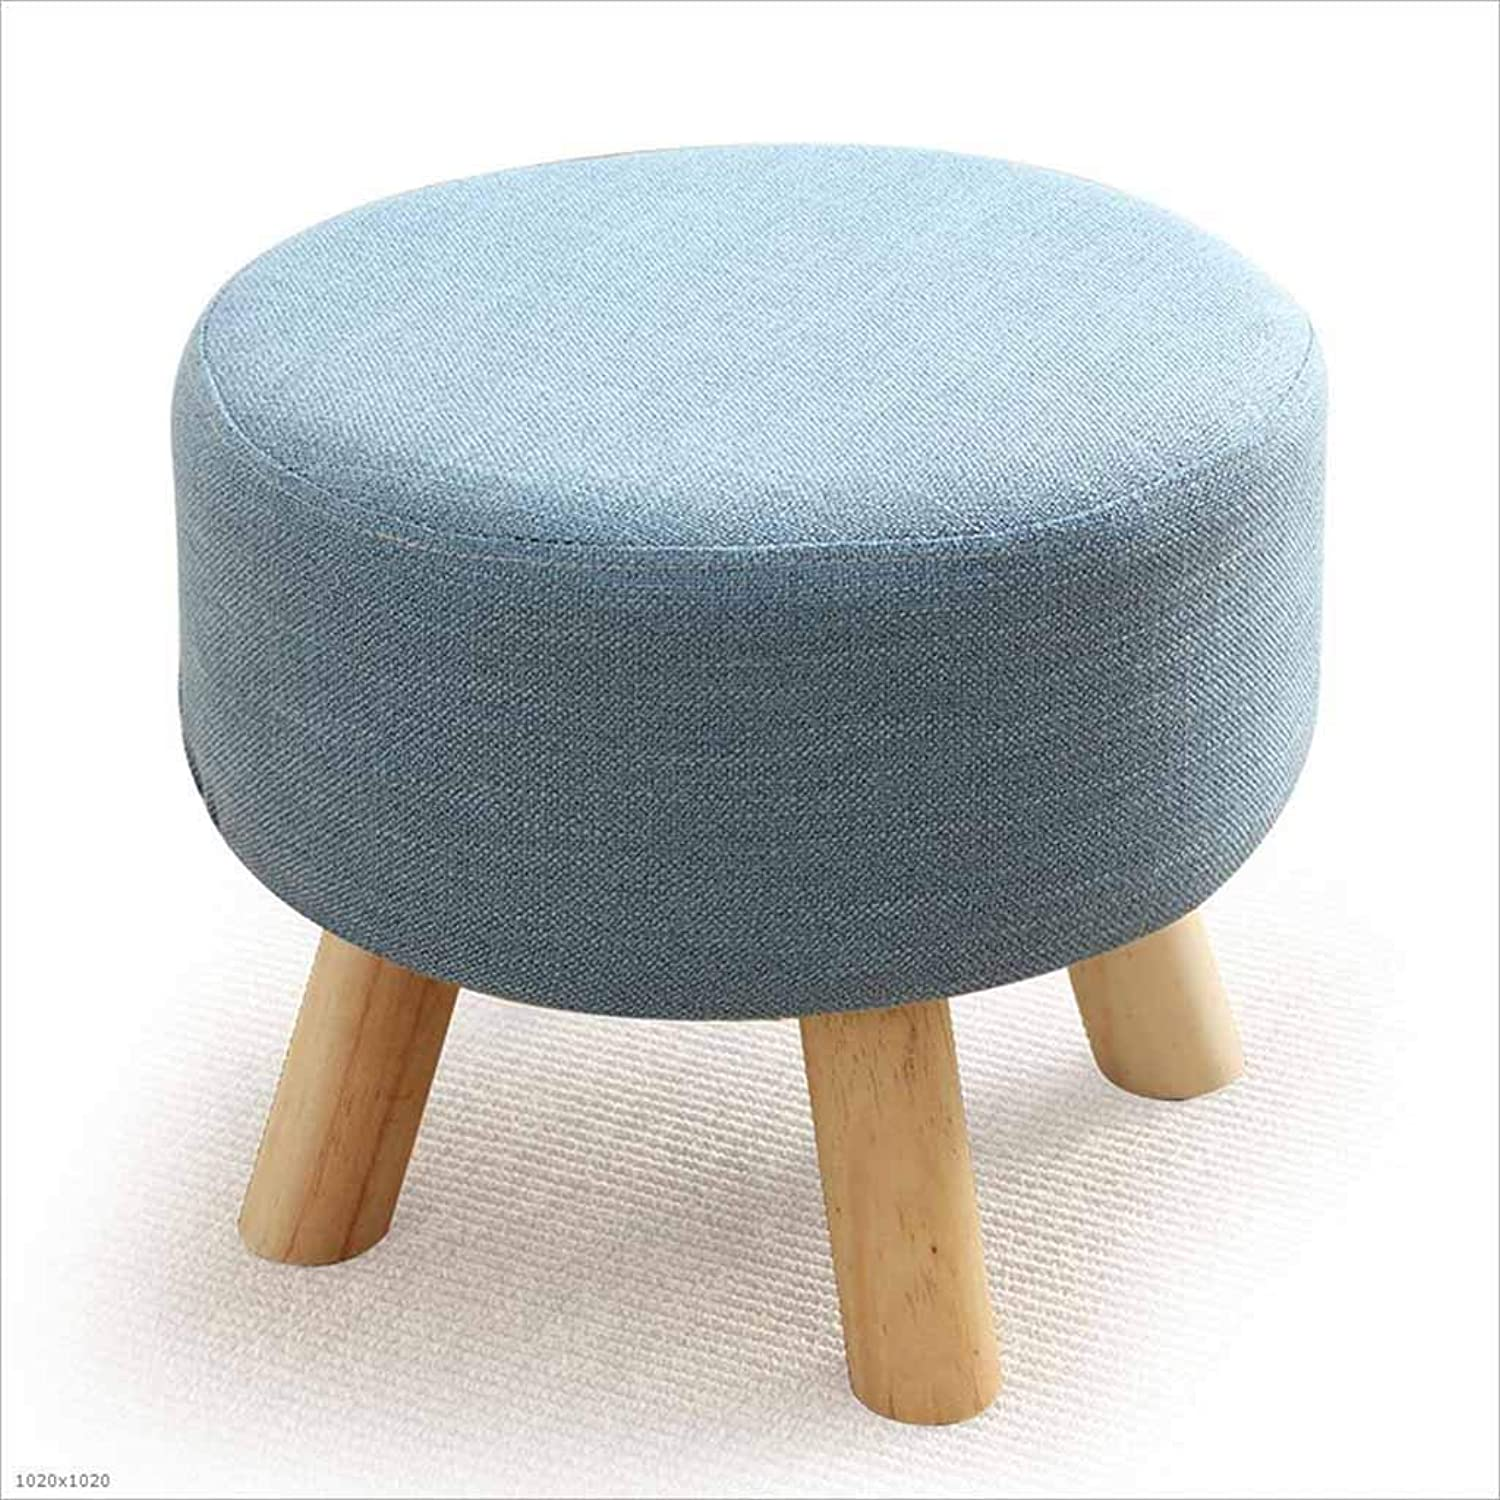 Sofa Stool Round Coffee Table Stool Adult Living Room Home Solid Wood Legs Change shoes Stool, 1